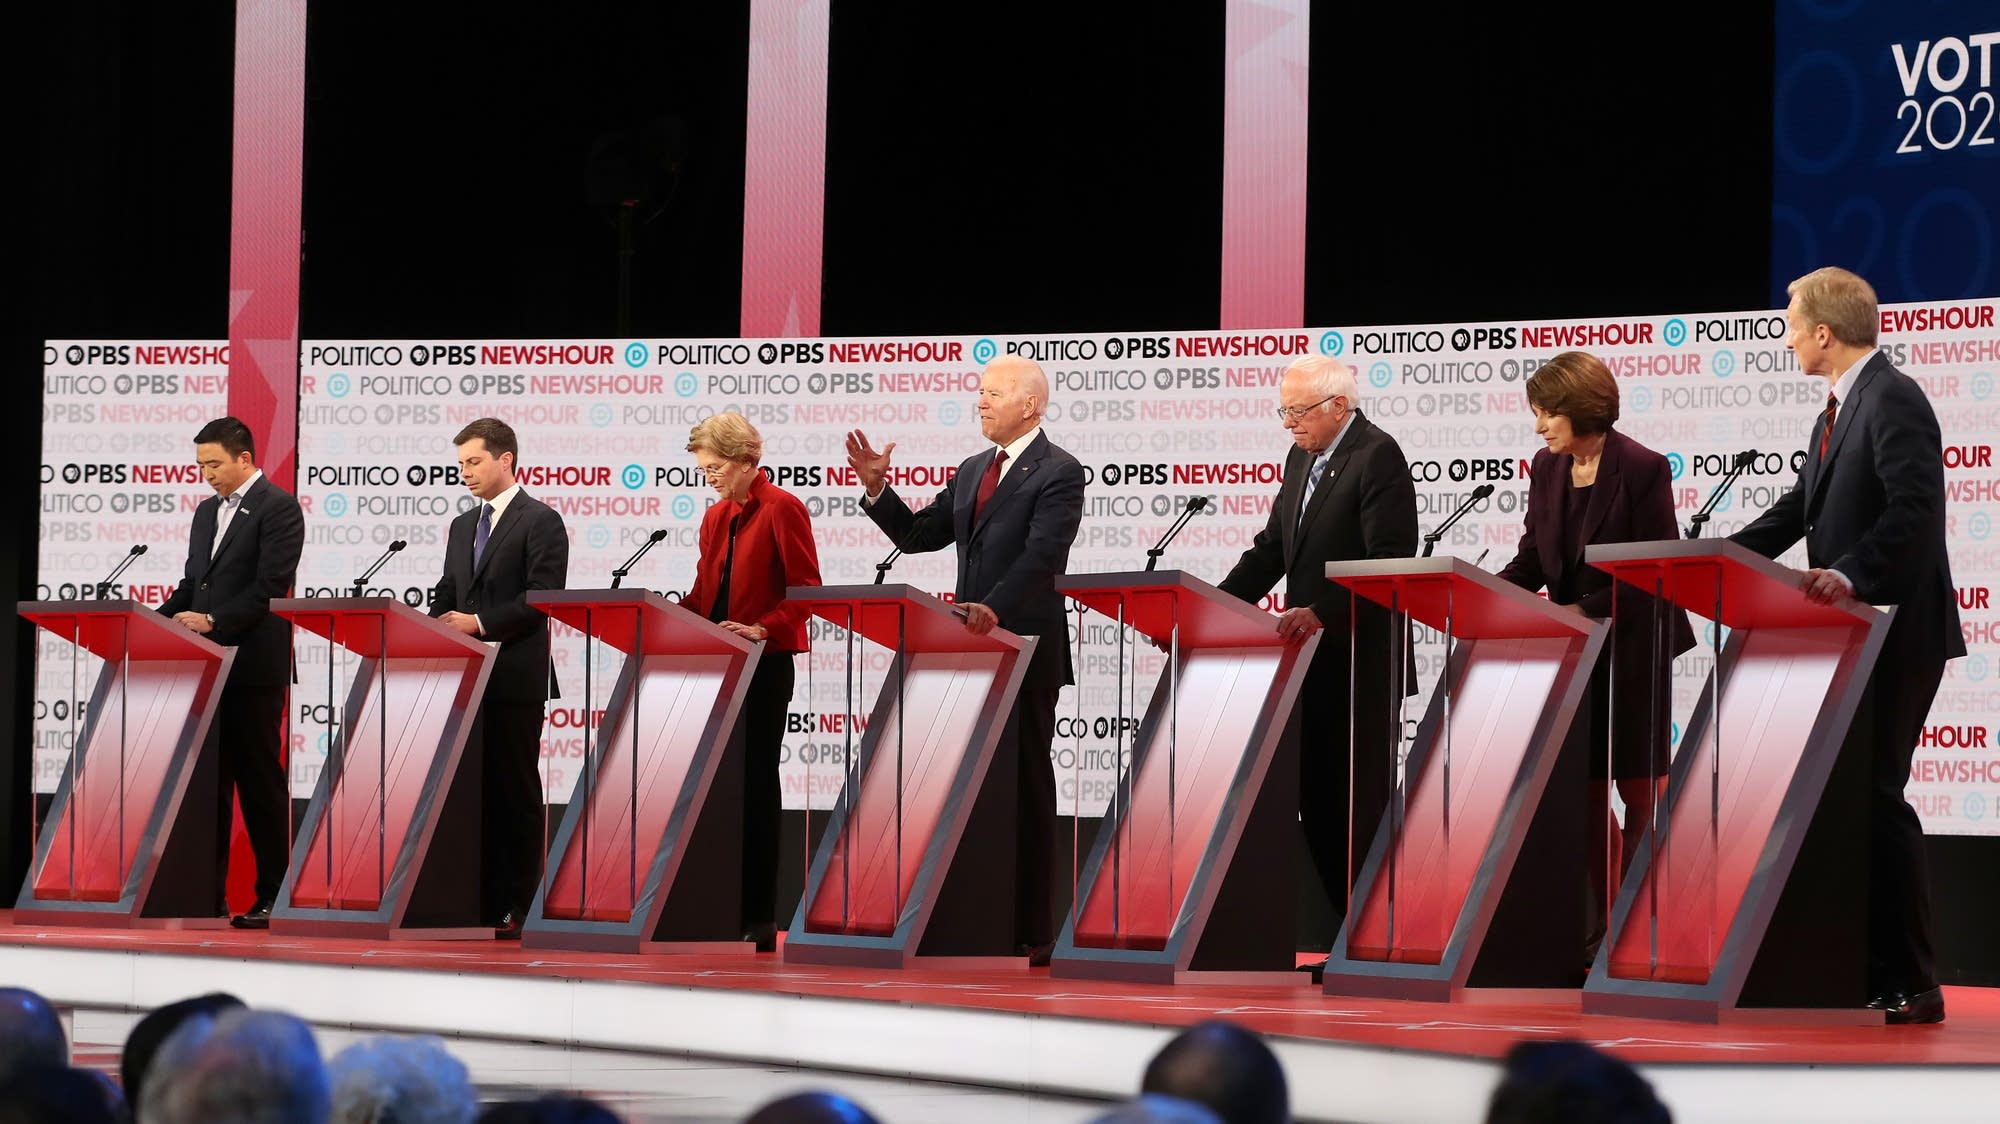 seven candidates standing behind podiums at the PBS / Politico debate